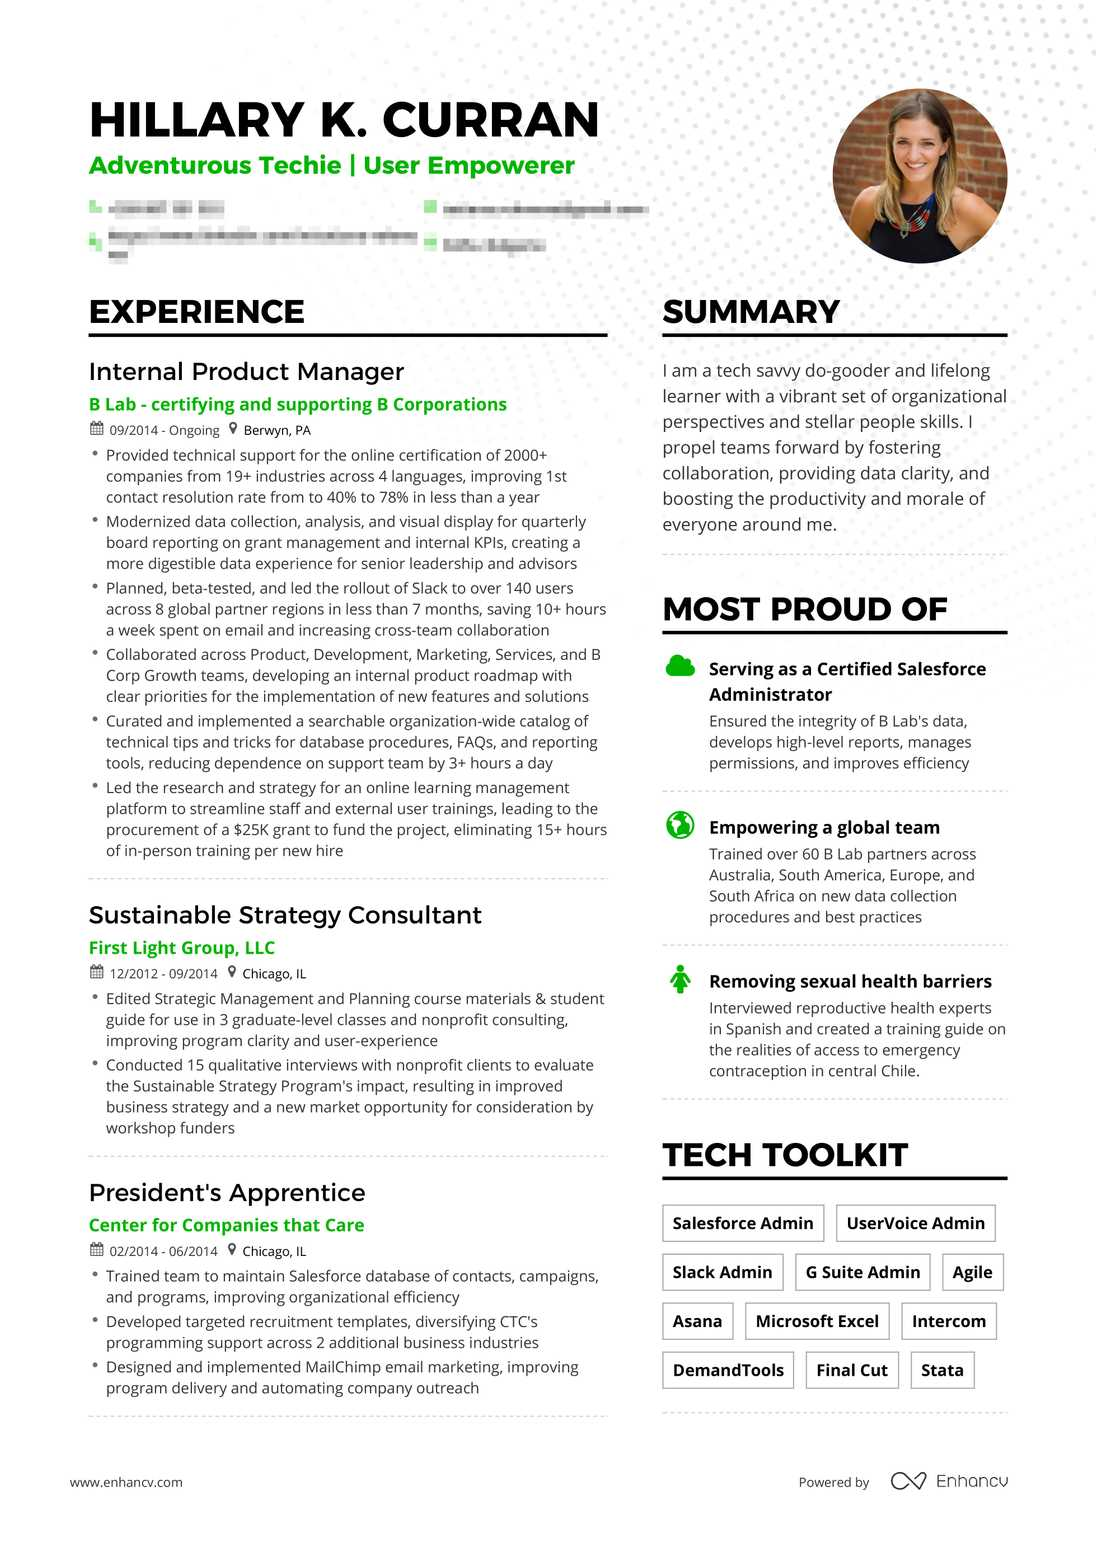 Real Product Manager Resume Example | Enhancv